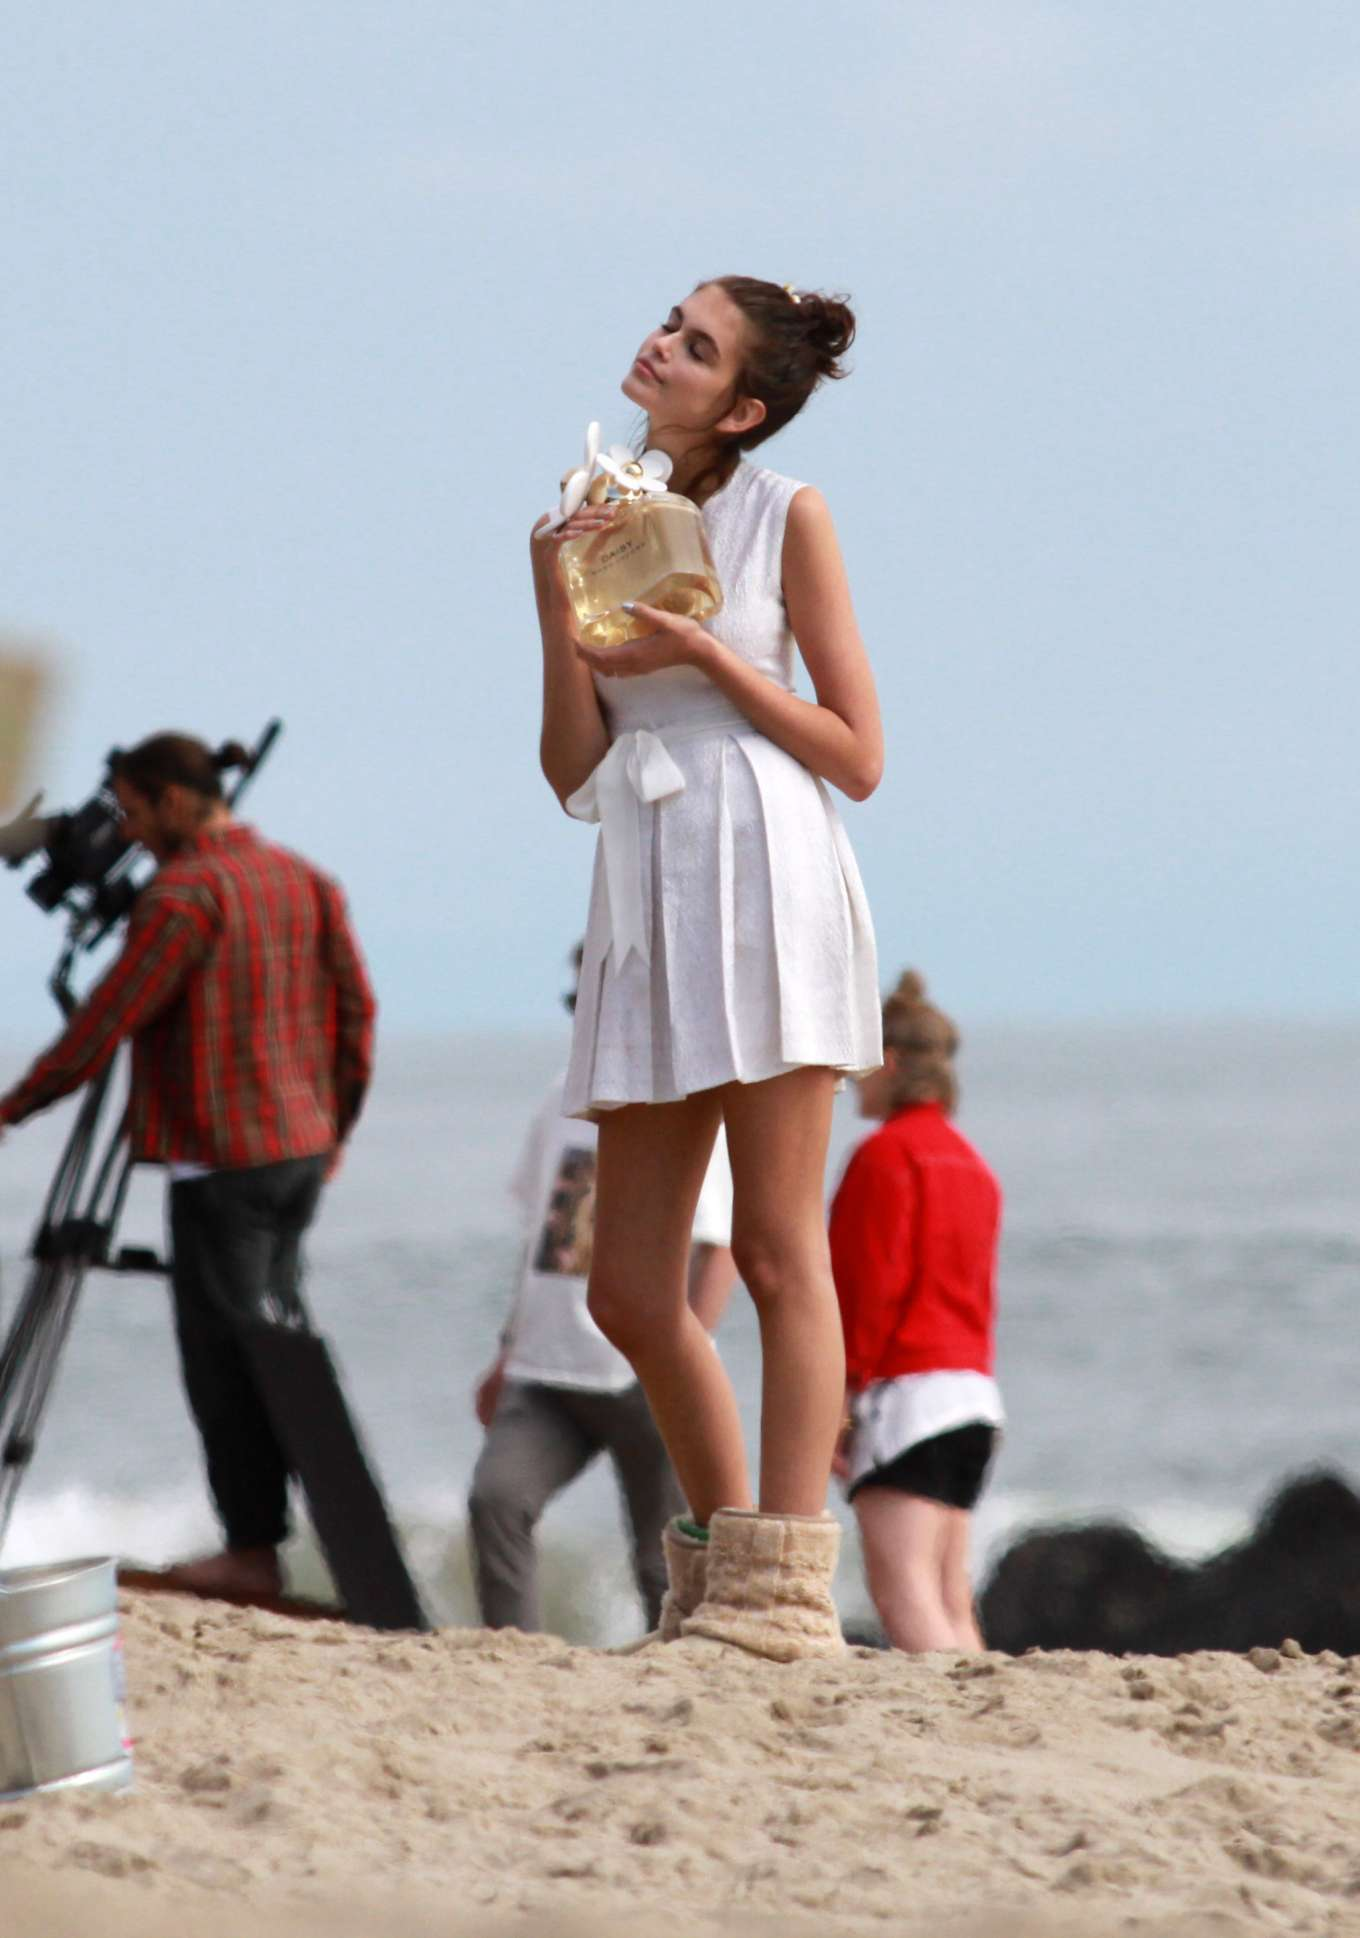 Kaia Gerber - Filming a new add campaign for Marc Jacobs daisy perfume in Malibu